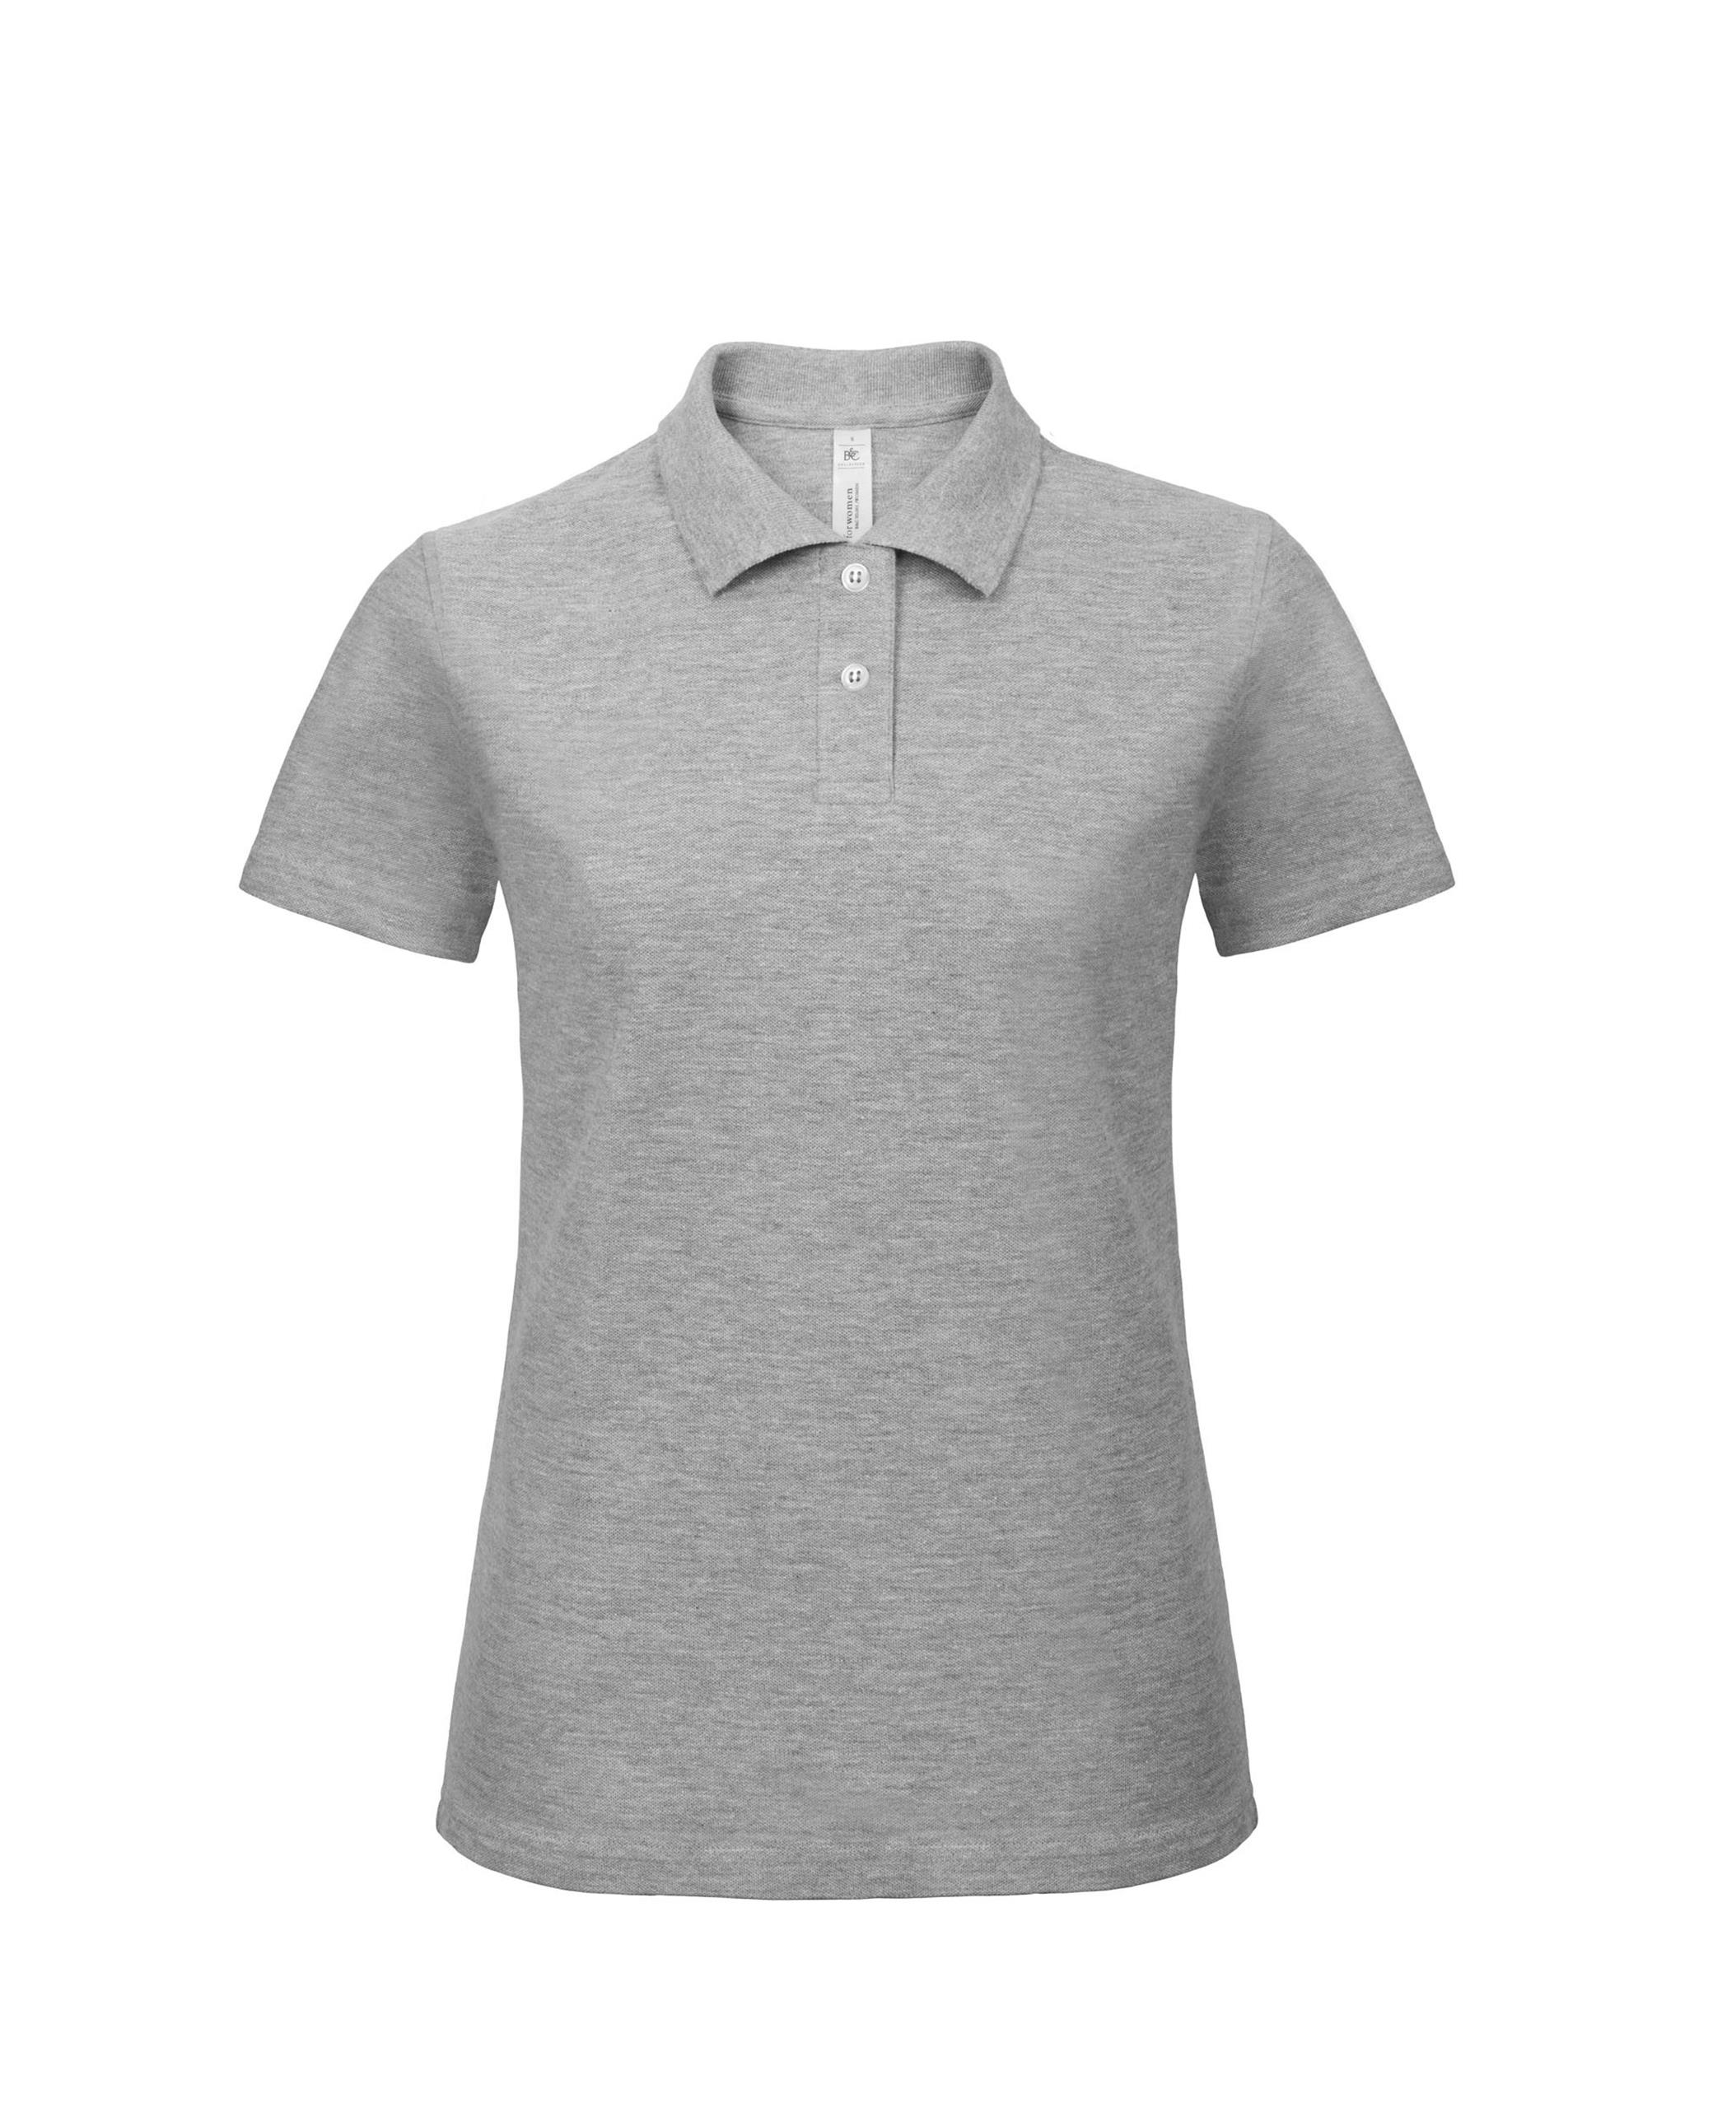 Womens B C Collection Casual Short Sleeved Button Up Polo